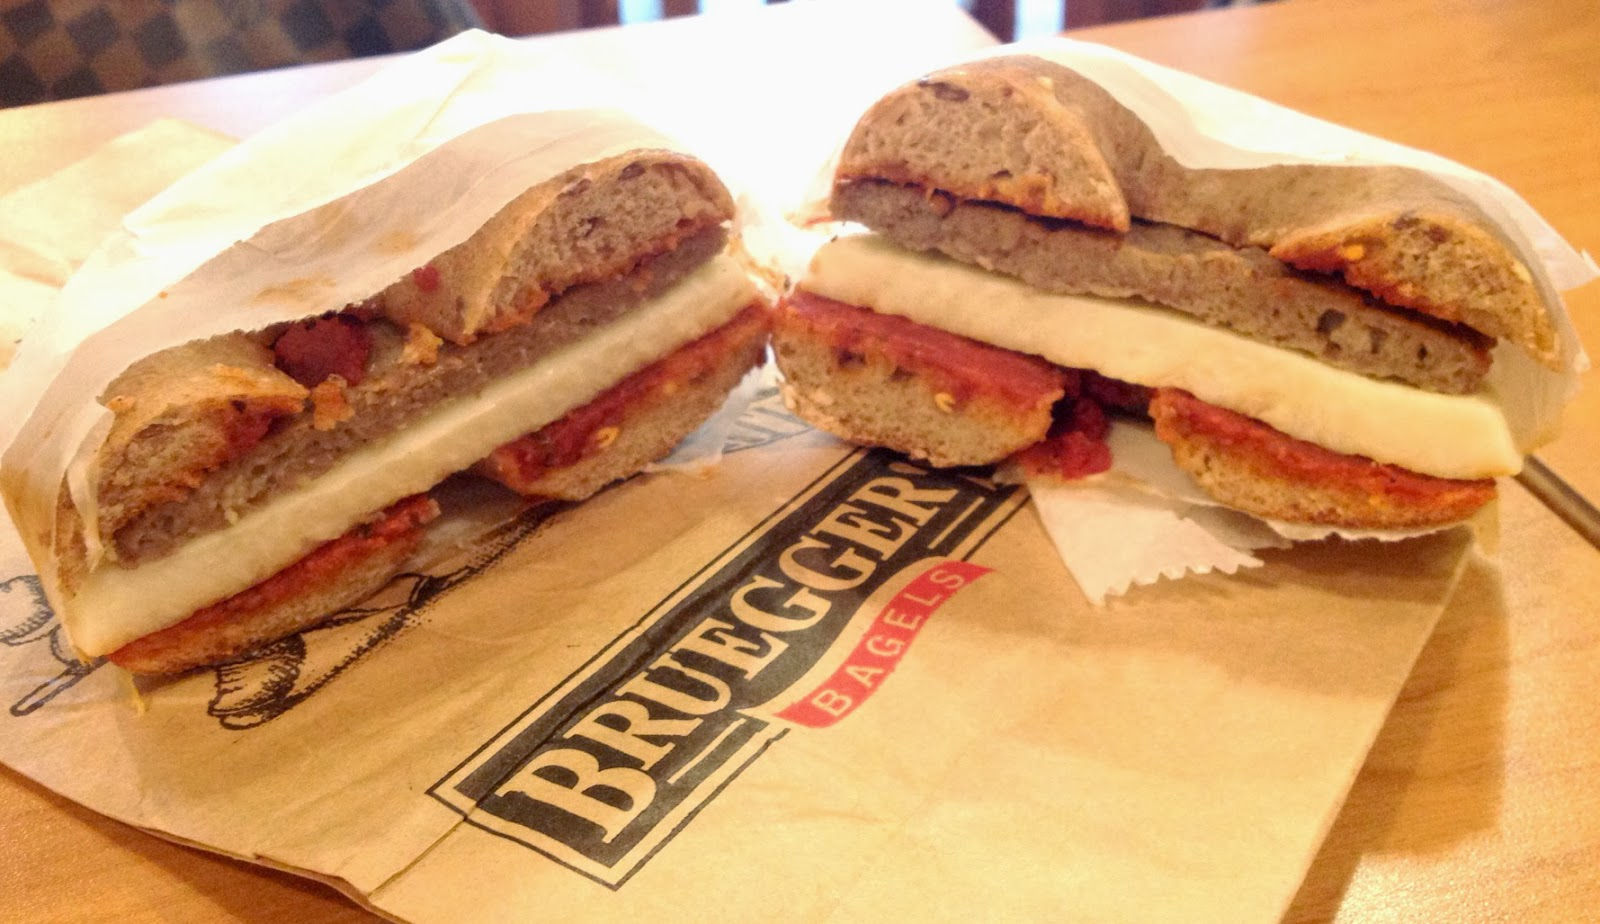 The Food Hussy!: Bruegger's new Breakfast Items: Chimi-Cheddar Egg ...